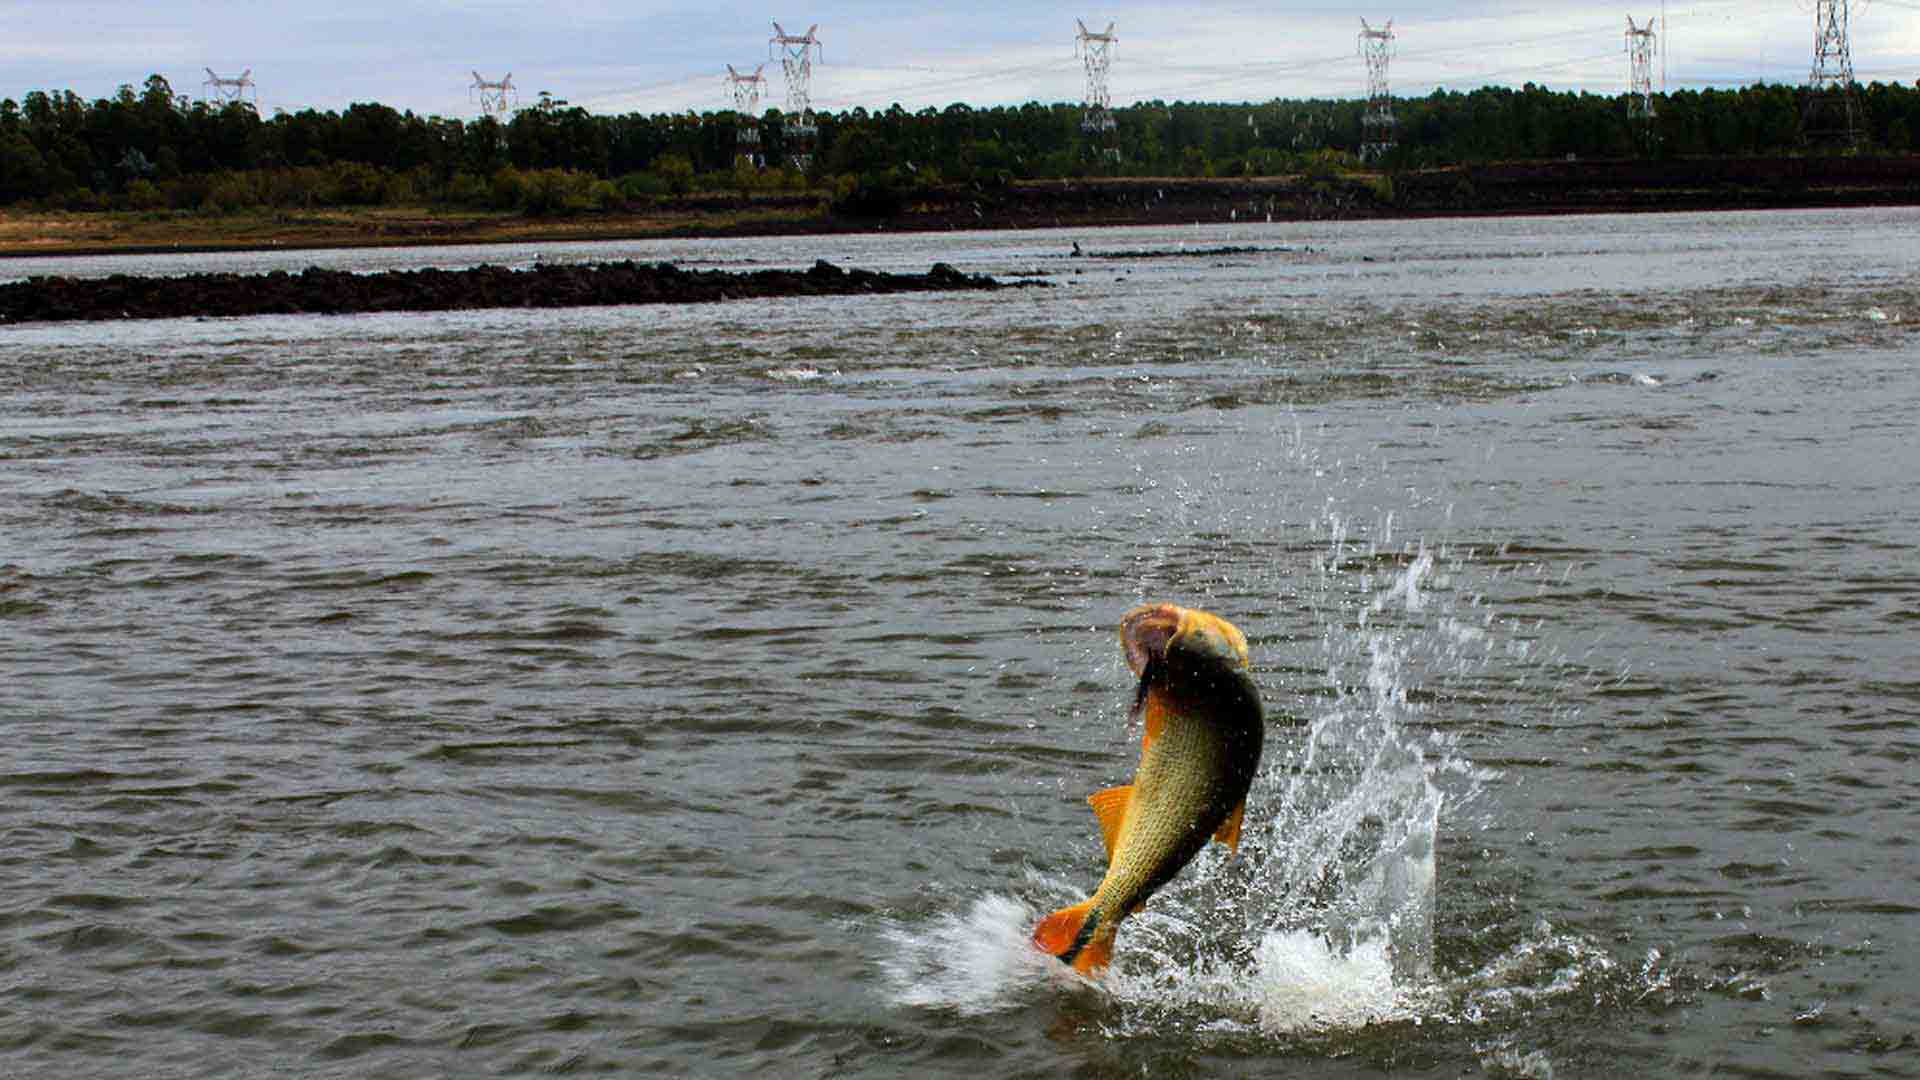 Jumping golden dorado